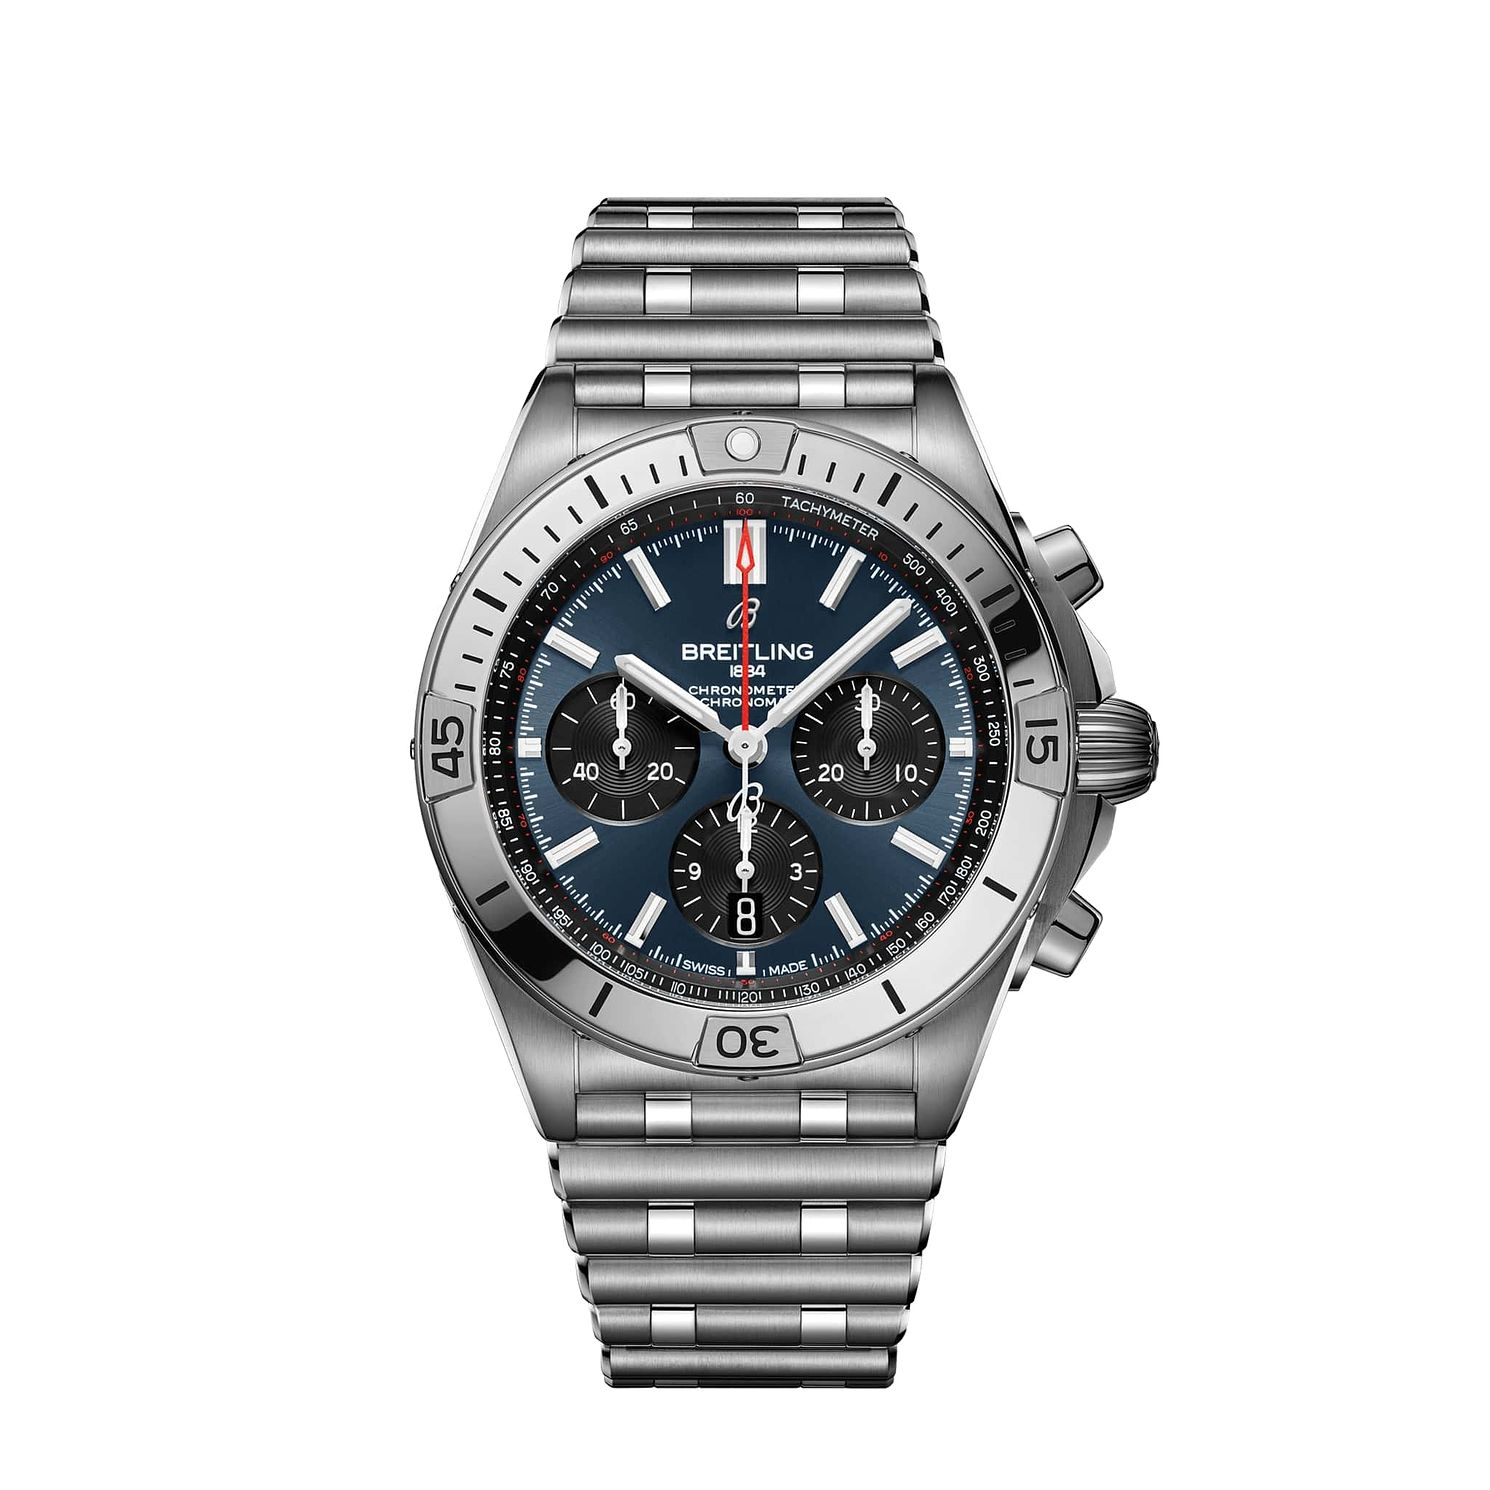 Breitling Chronomat Men's Stainless Steel Bracelet Watch - Product number 3863549